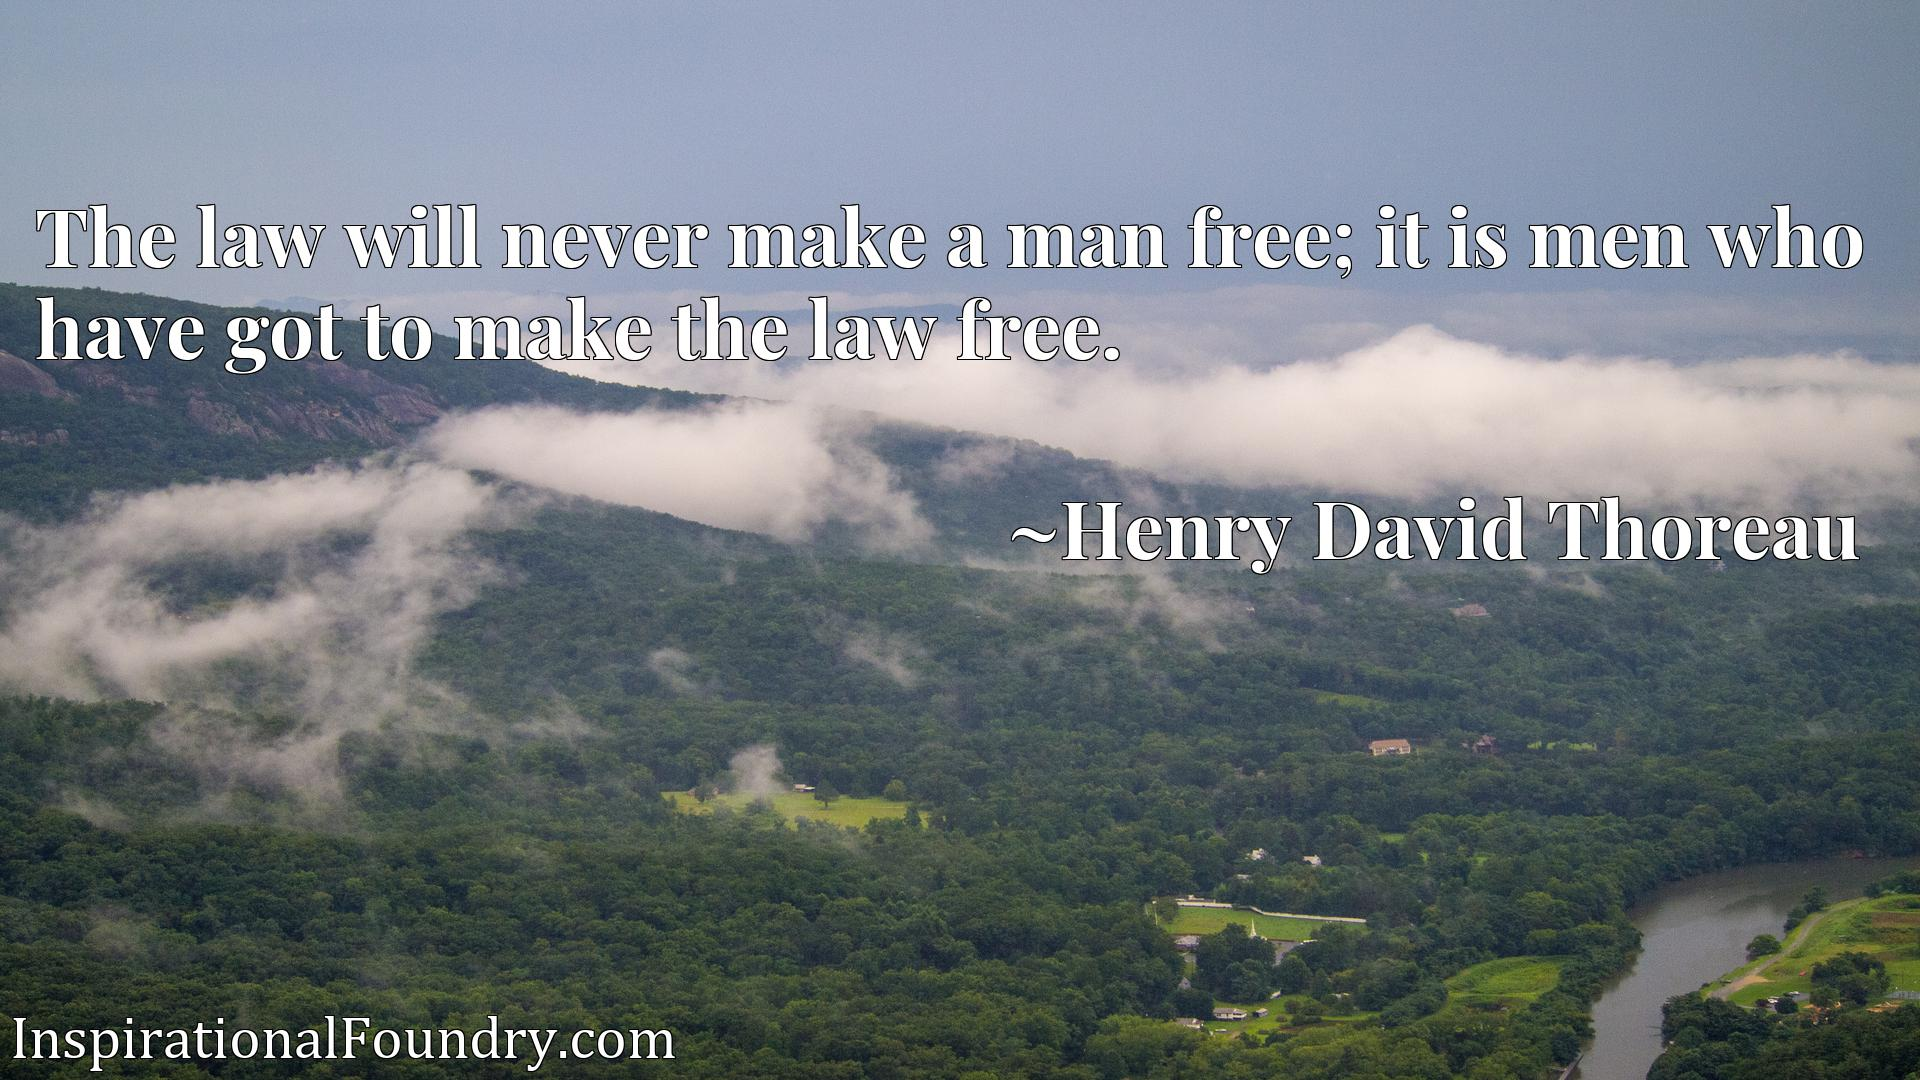 The law will never make a man free; it is men who have got to make the law free.